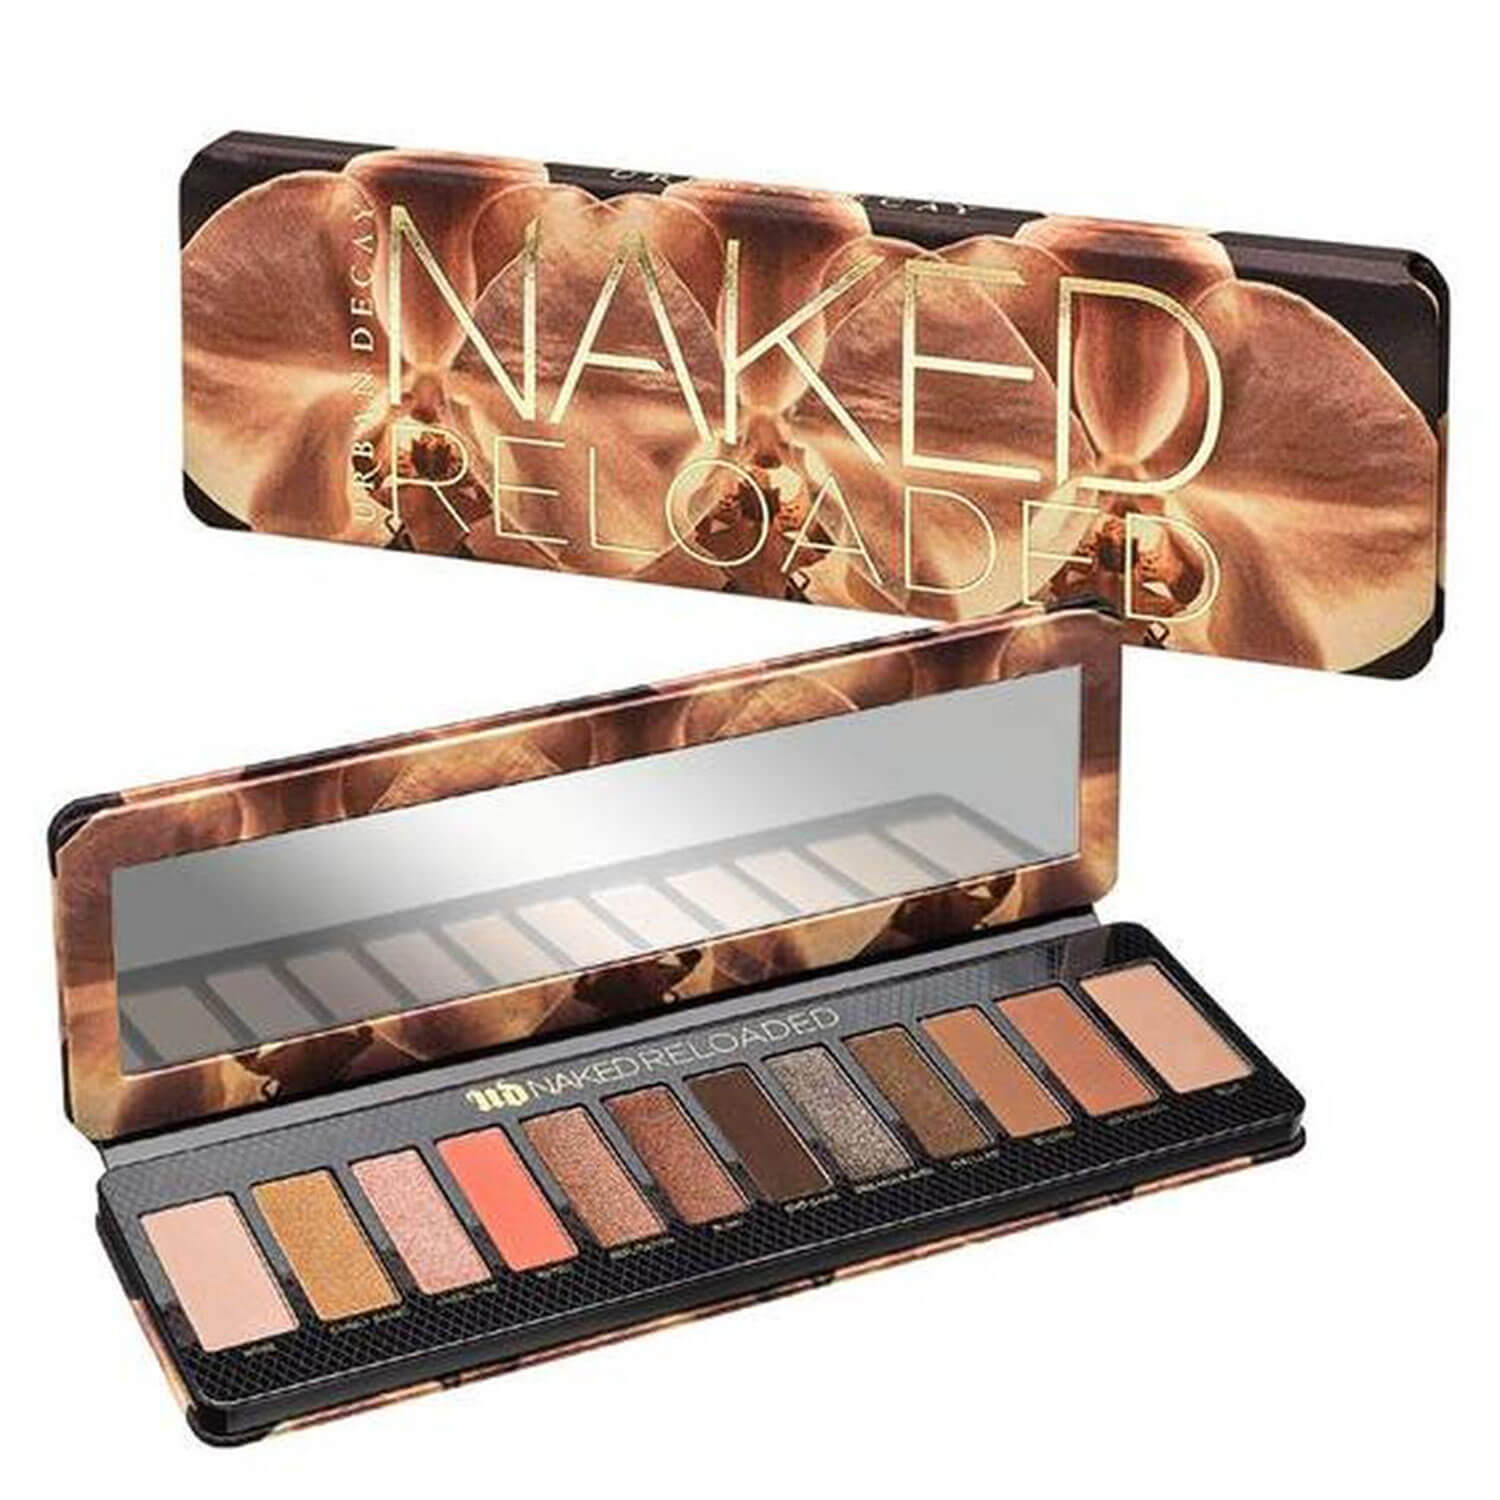 Naked Palettes - Eyeshadow Palette Naked Reloaded - 1x